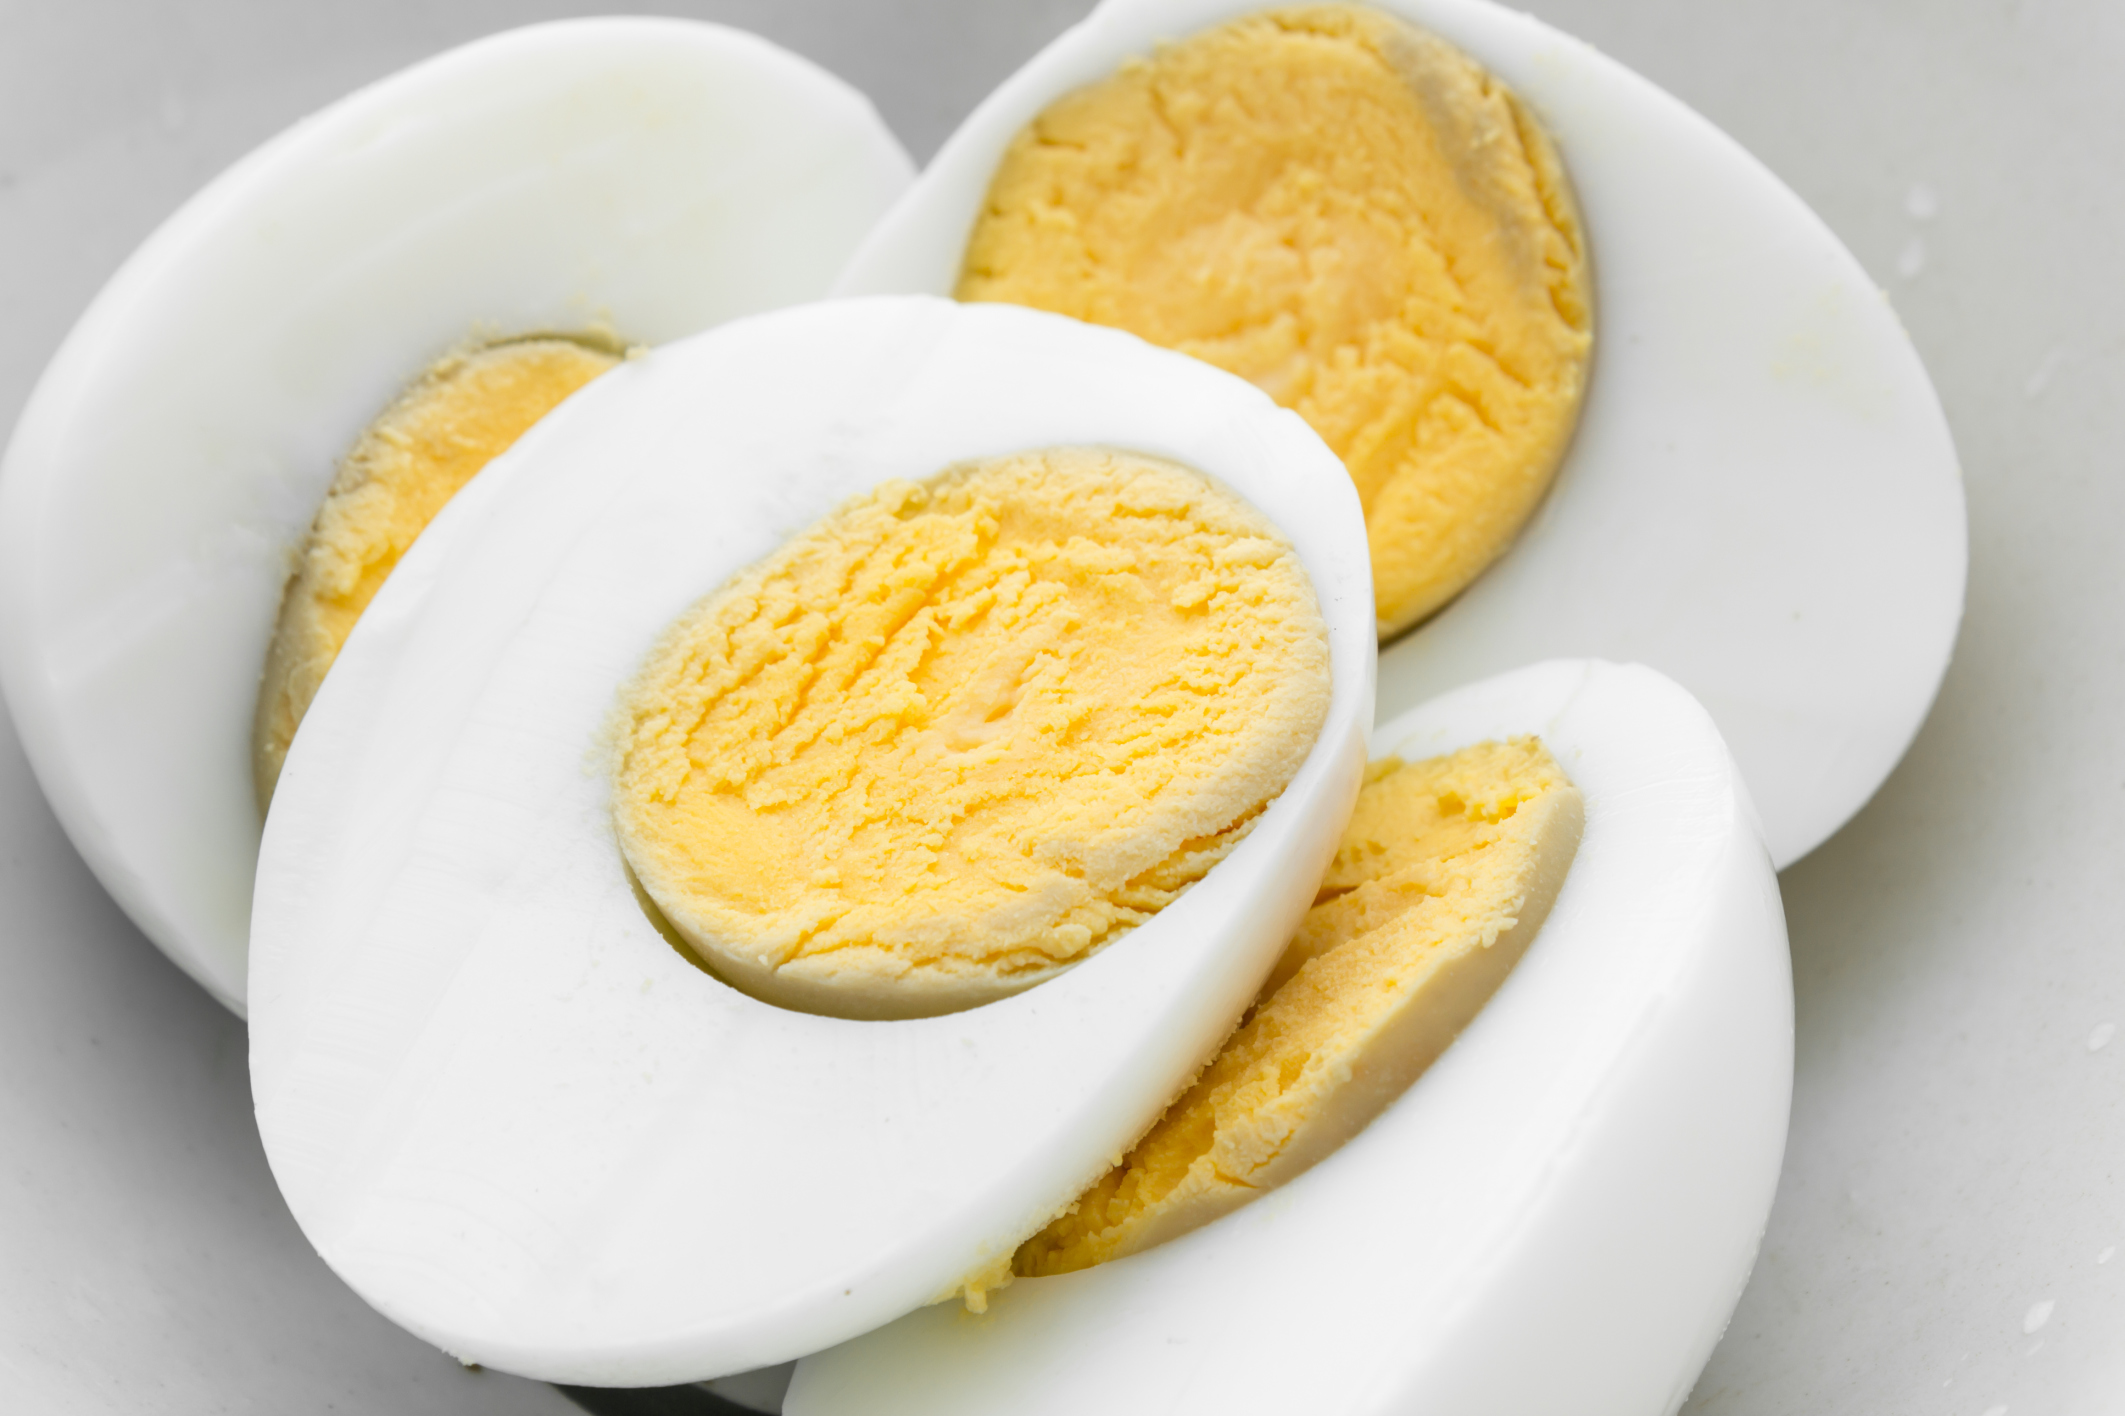 Psychotherapy is almost like a soft-boiled egg 30